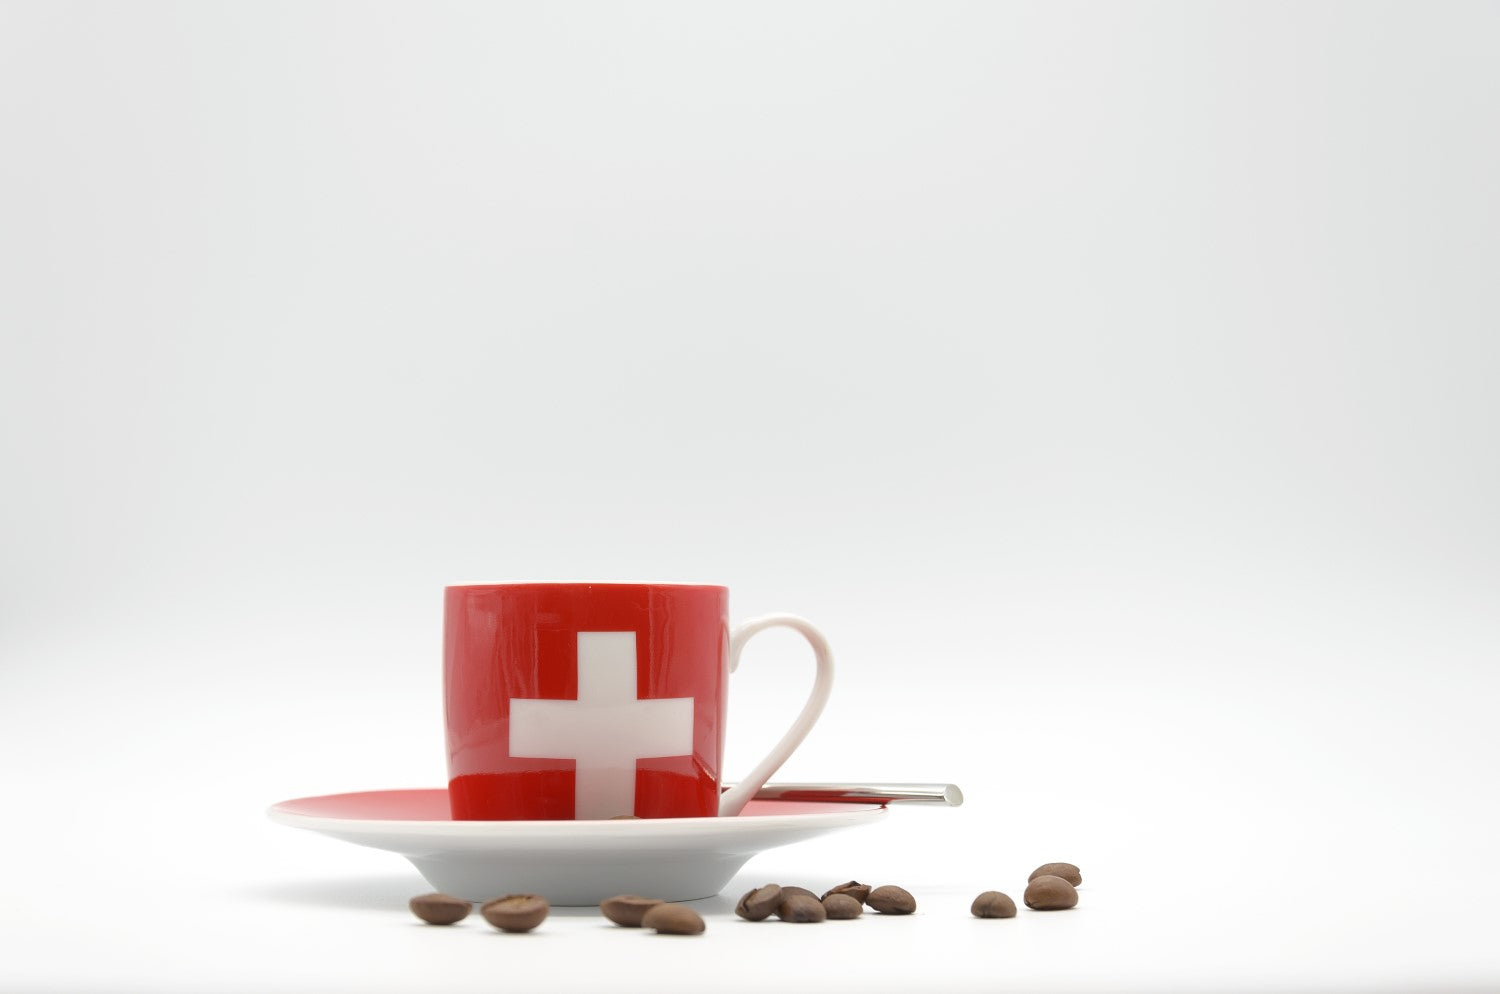 red cup with cross sign and coffee beans